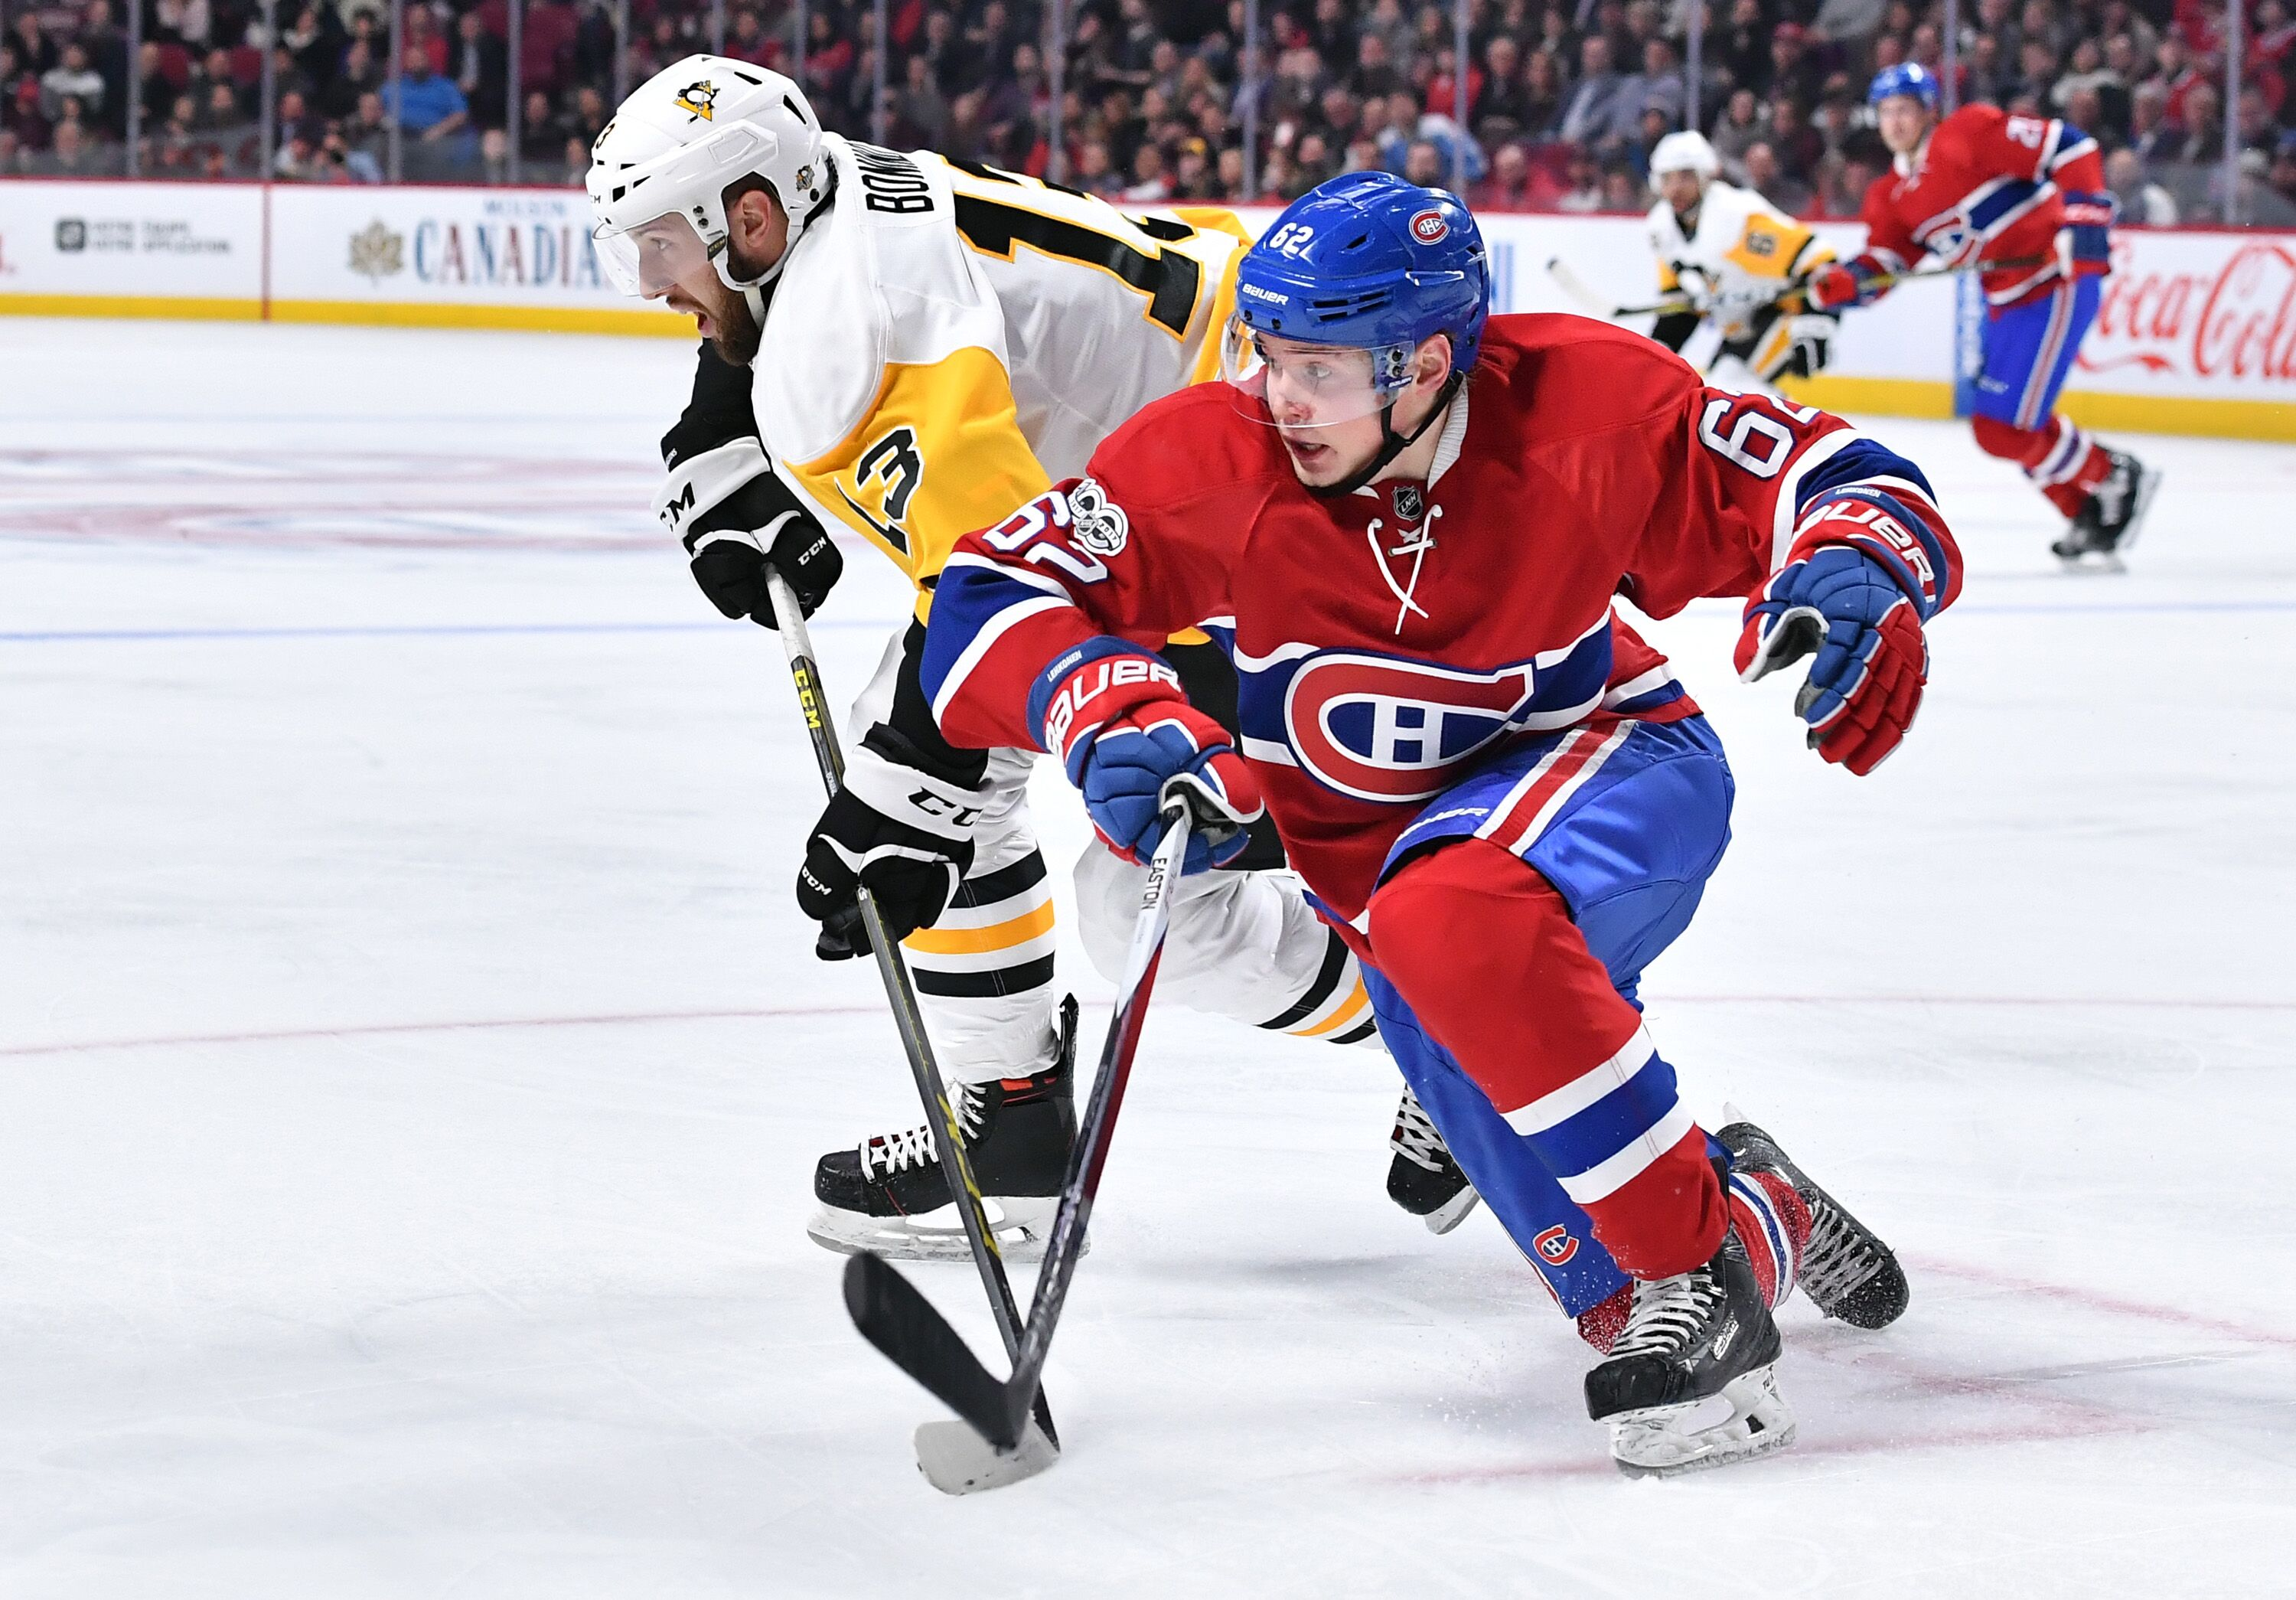 639226774-pittsburgh-penguins-v-montreal-canadiens.jpg